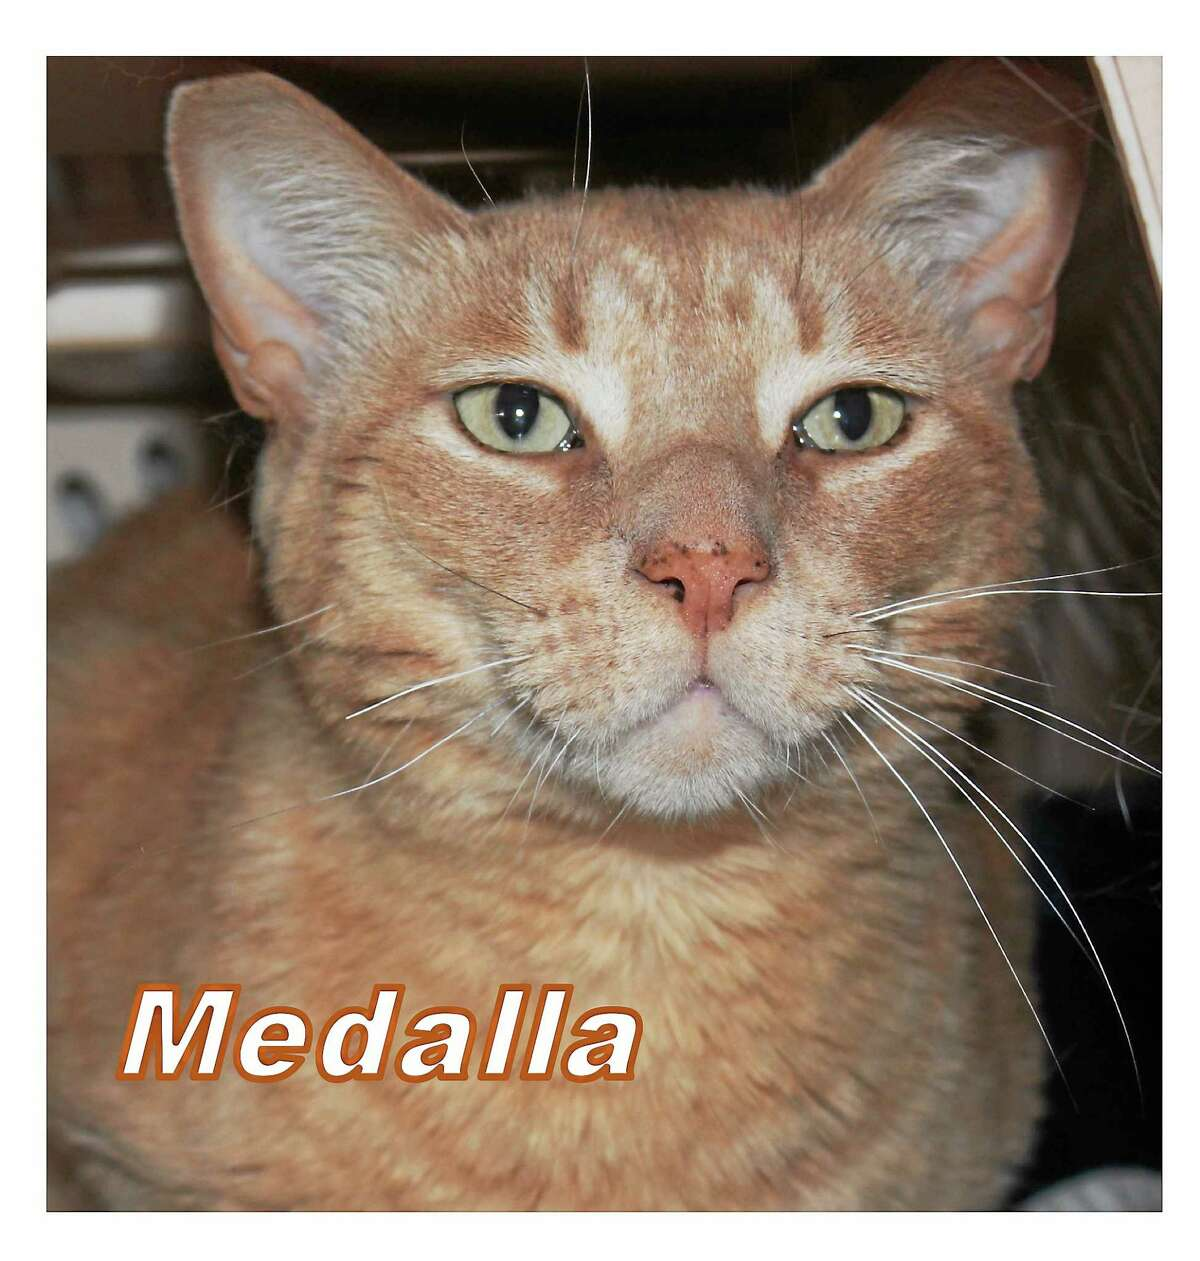 Iím Medalla! Iím a short ?-?hair, buff-colored male, almost 3 years old. Iím always there to greet my human Cat Tales friends as soon as they walk in the door! I have expressive eyes and a very easy temperament. Look closely and you can see my ìsmileî. A home with older children and no dogs is best for me. Iím okay as the only pet or with one other non-dominant cat is okay, too. Iím a bit overwhelmed at the shelter so I am hoping a kind and gentle family will take me home soon. I am responsive to petting and talking and would love to cuddle up next to you at night. Cat Tales is seeking permanent adoption for me and will tell you the best way to take care of me. Please call Cat Tales at (860) 344-9043 or Email: info@CatTalesCT.org to inquire about Medalla!